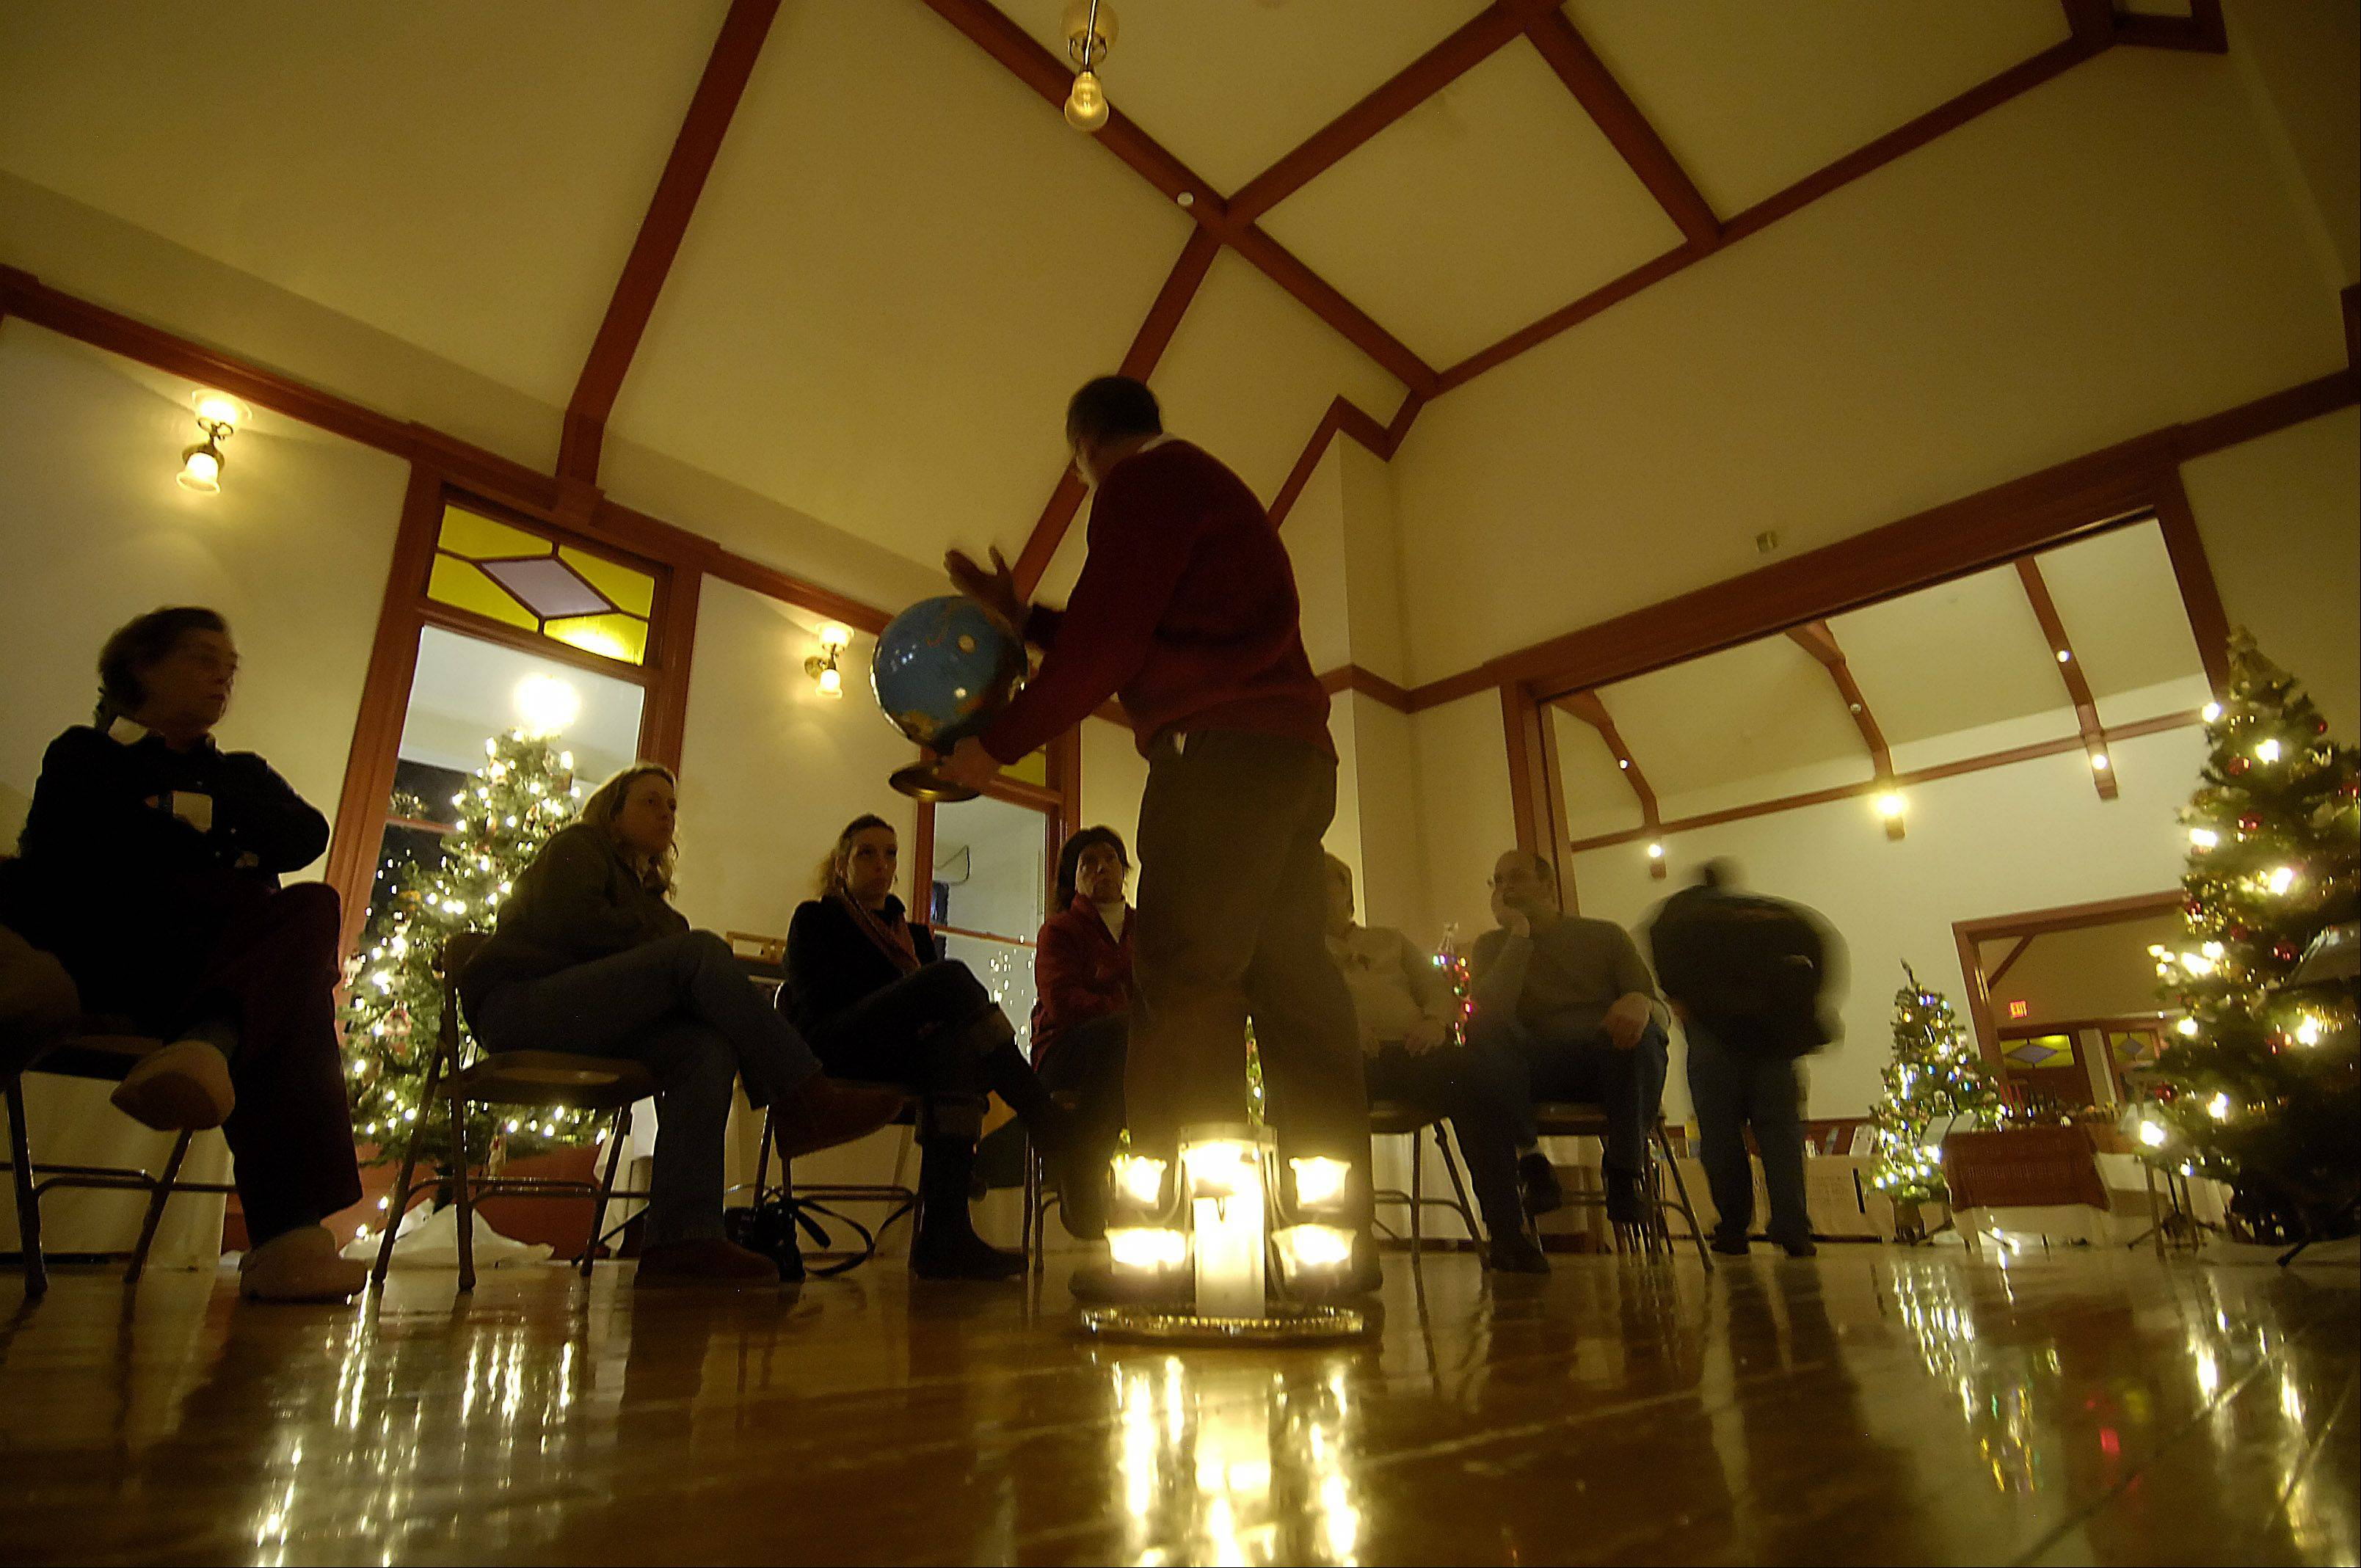 The solstice program at the Elgin Public Museum in Lords Park aims to teach guests about why this seasonal turning point holds such significance.